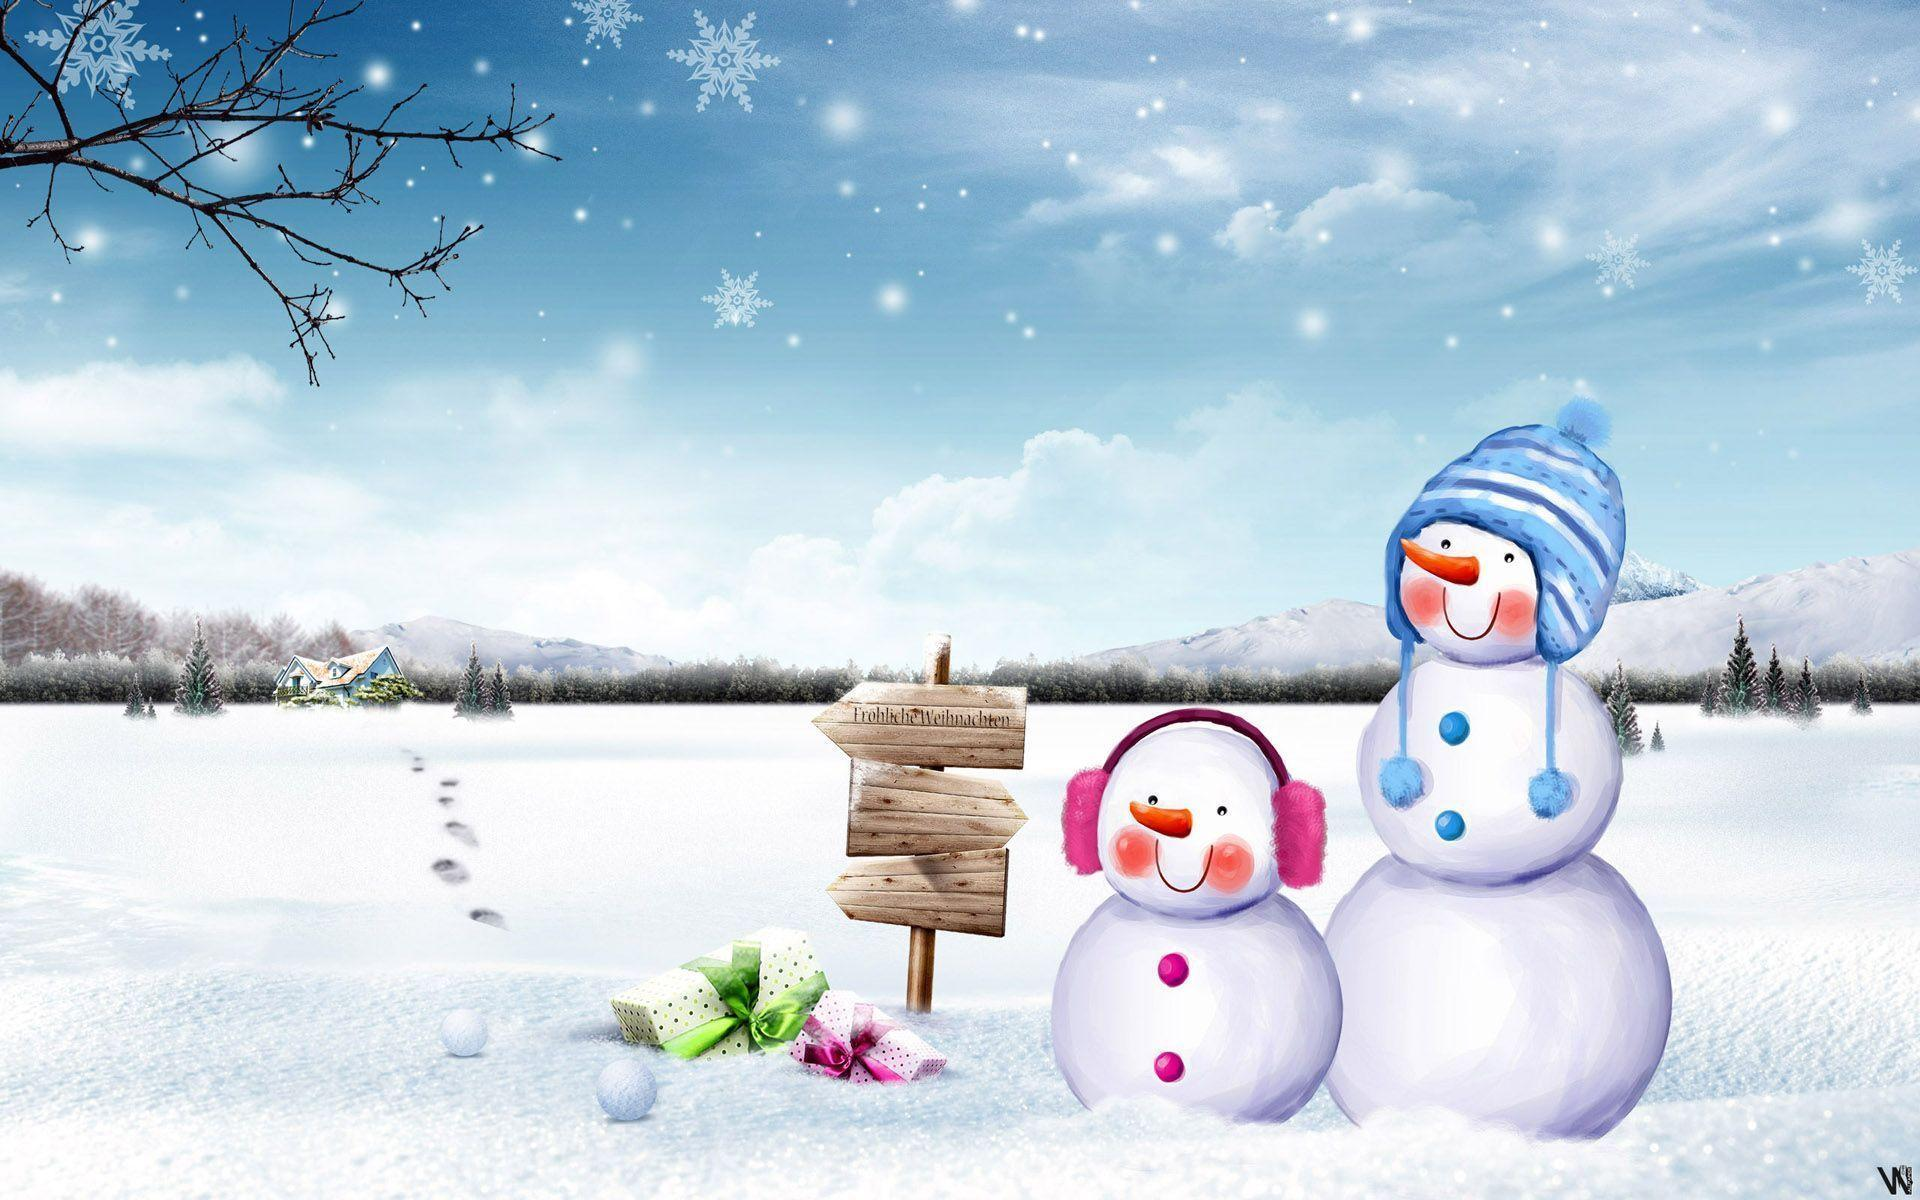 Snowman Wallpapers 1920x1200